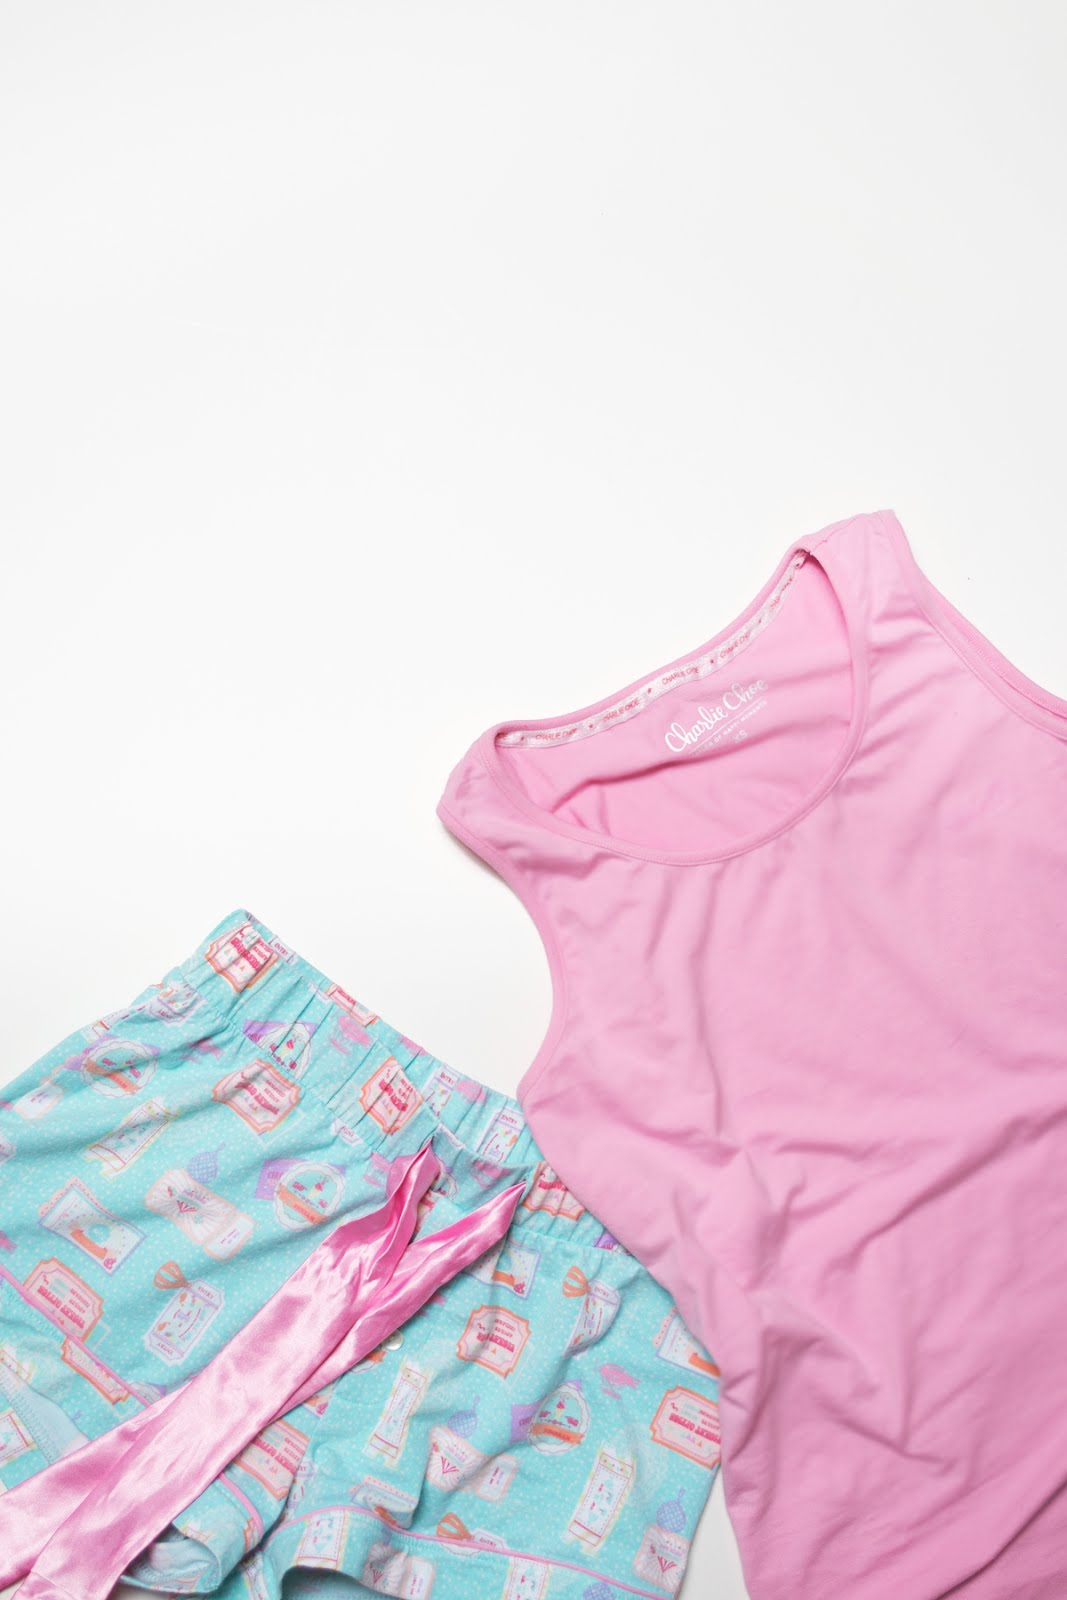 Charlie choe, pyjama, sleepwear, candy colors, mini-me, pj's, pajamas